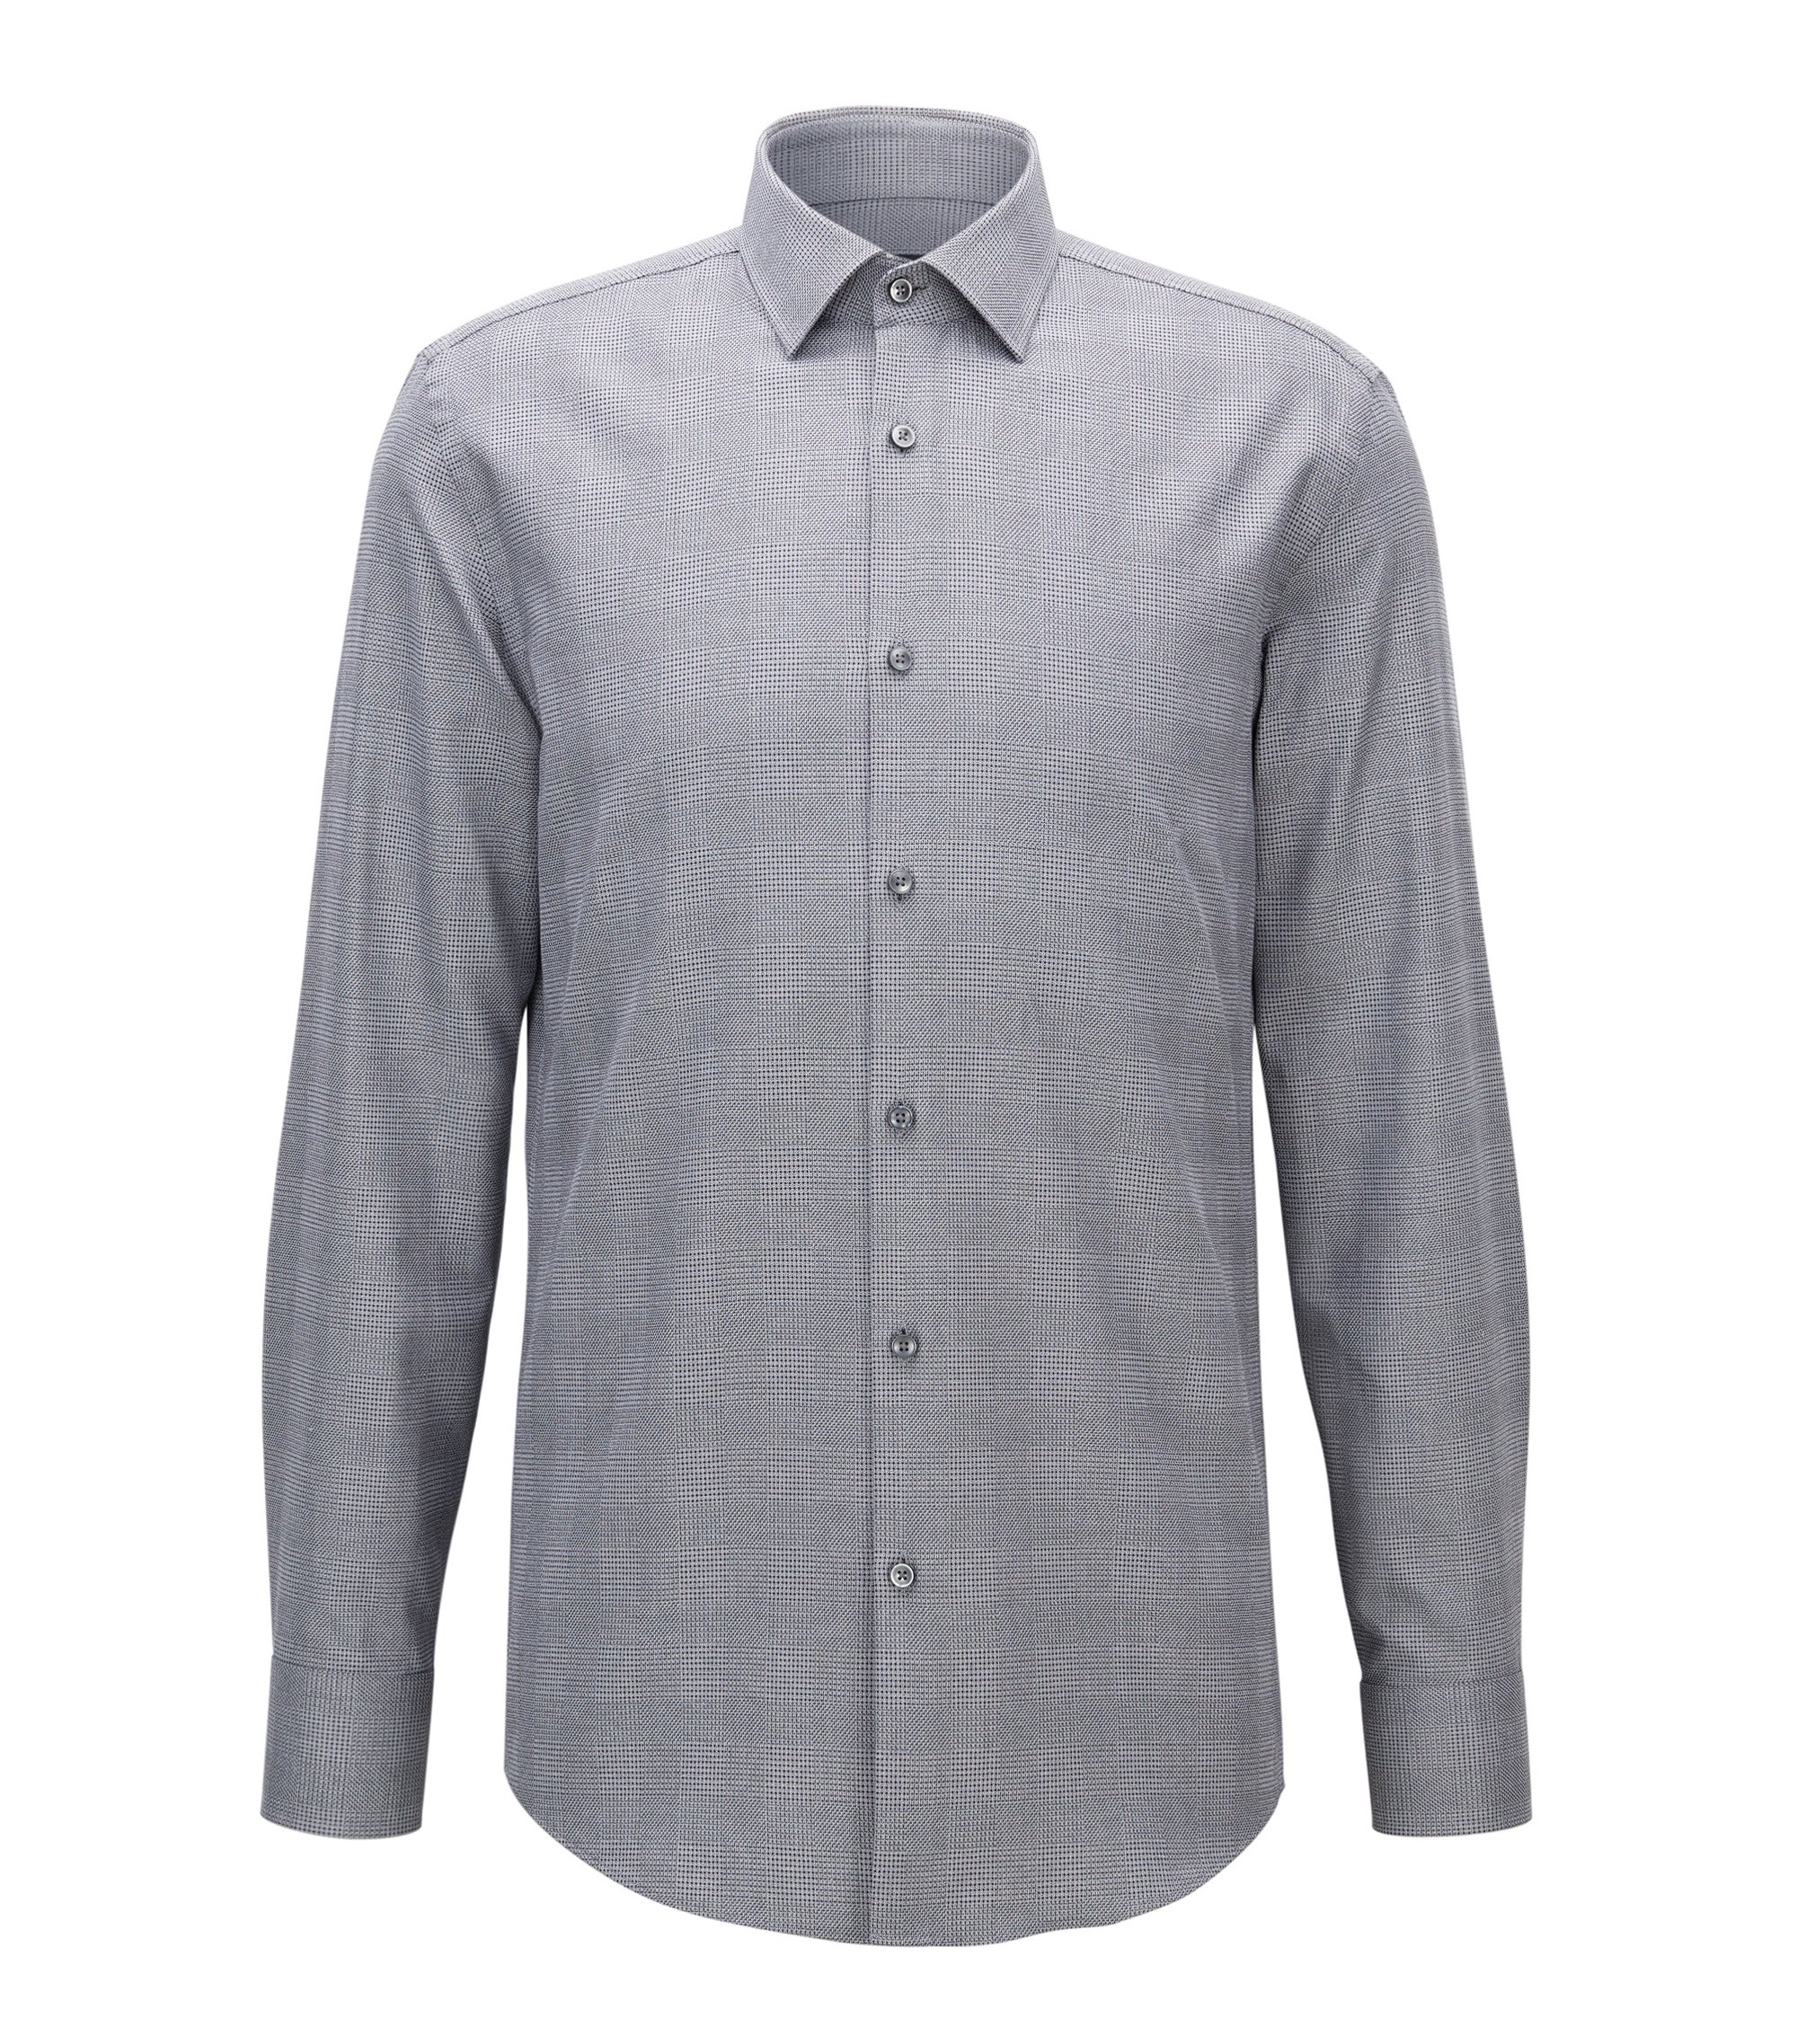 Plaid Cotton Dress Shirt, Slim Fi t| Jenno, Charcoal